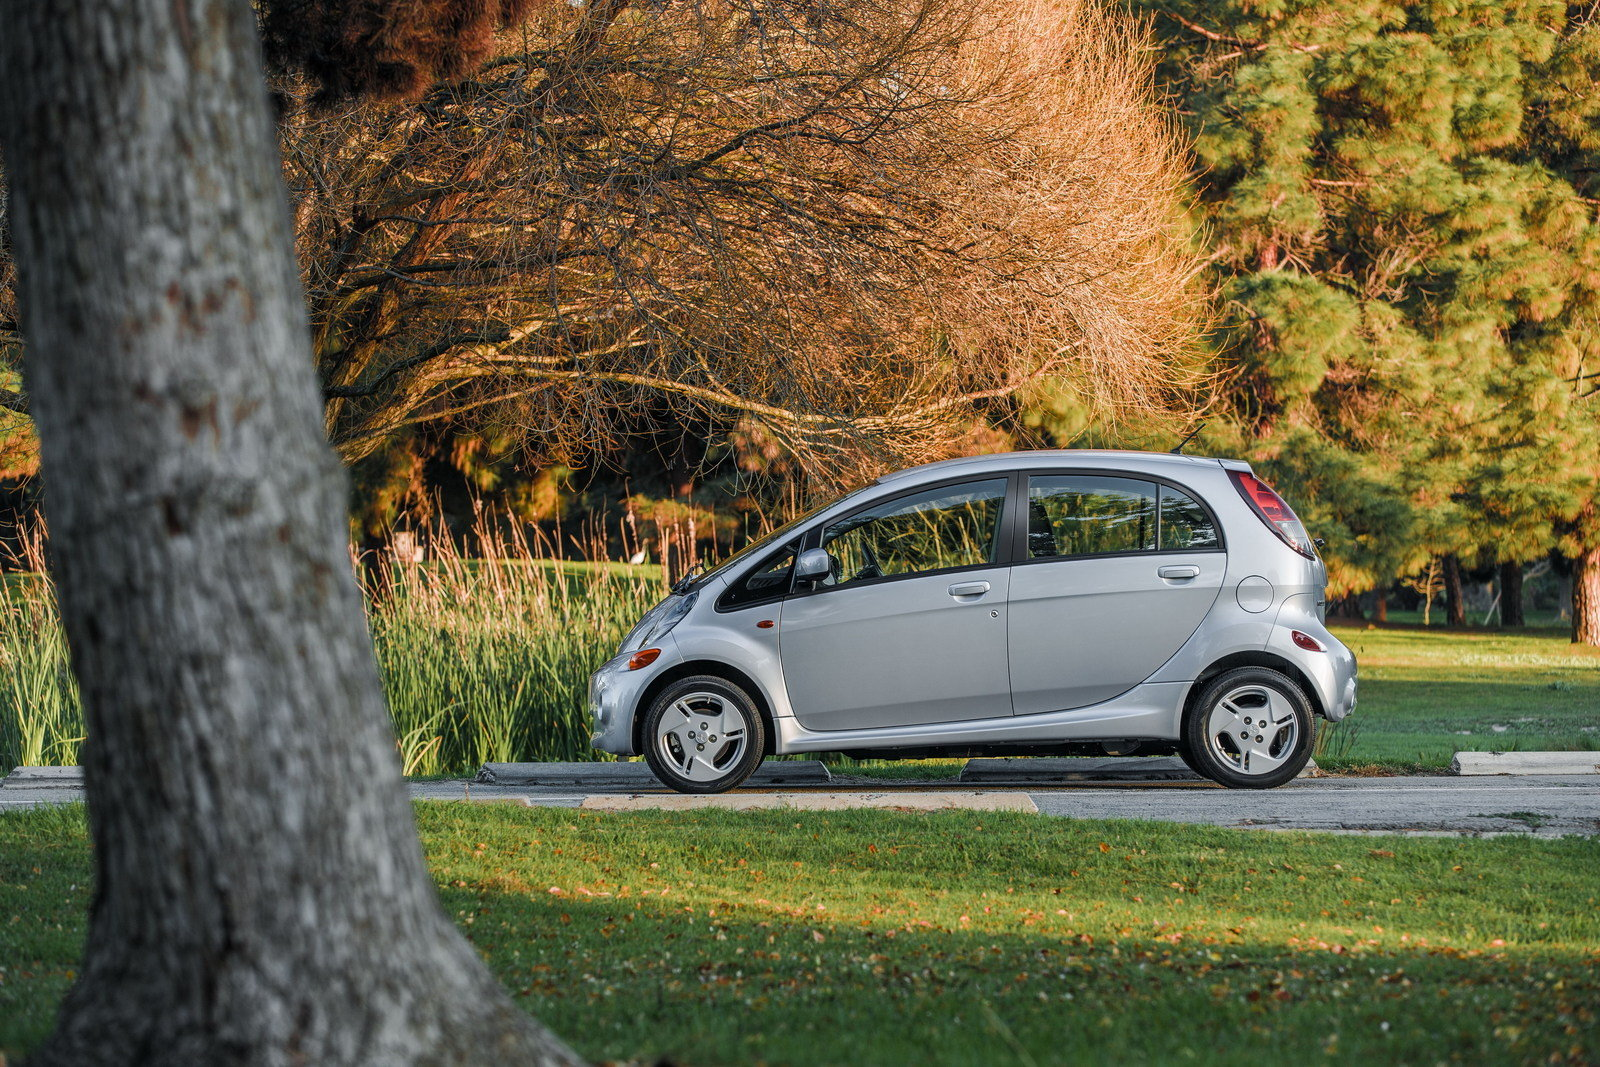 2014 mitsubishi i miev picture 648790 car review top speed. Black Bedroom Furniture Sets. Home Design Ideas